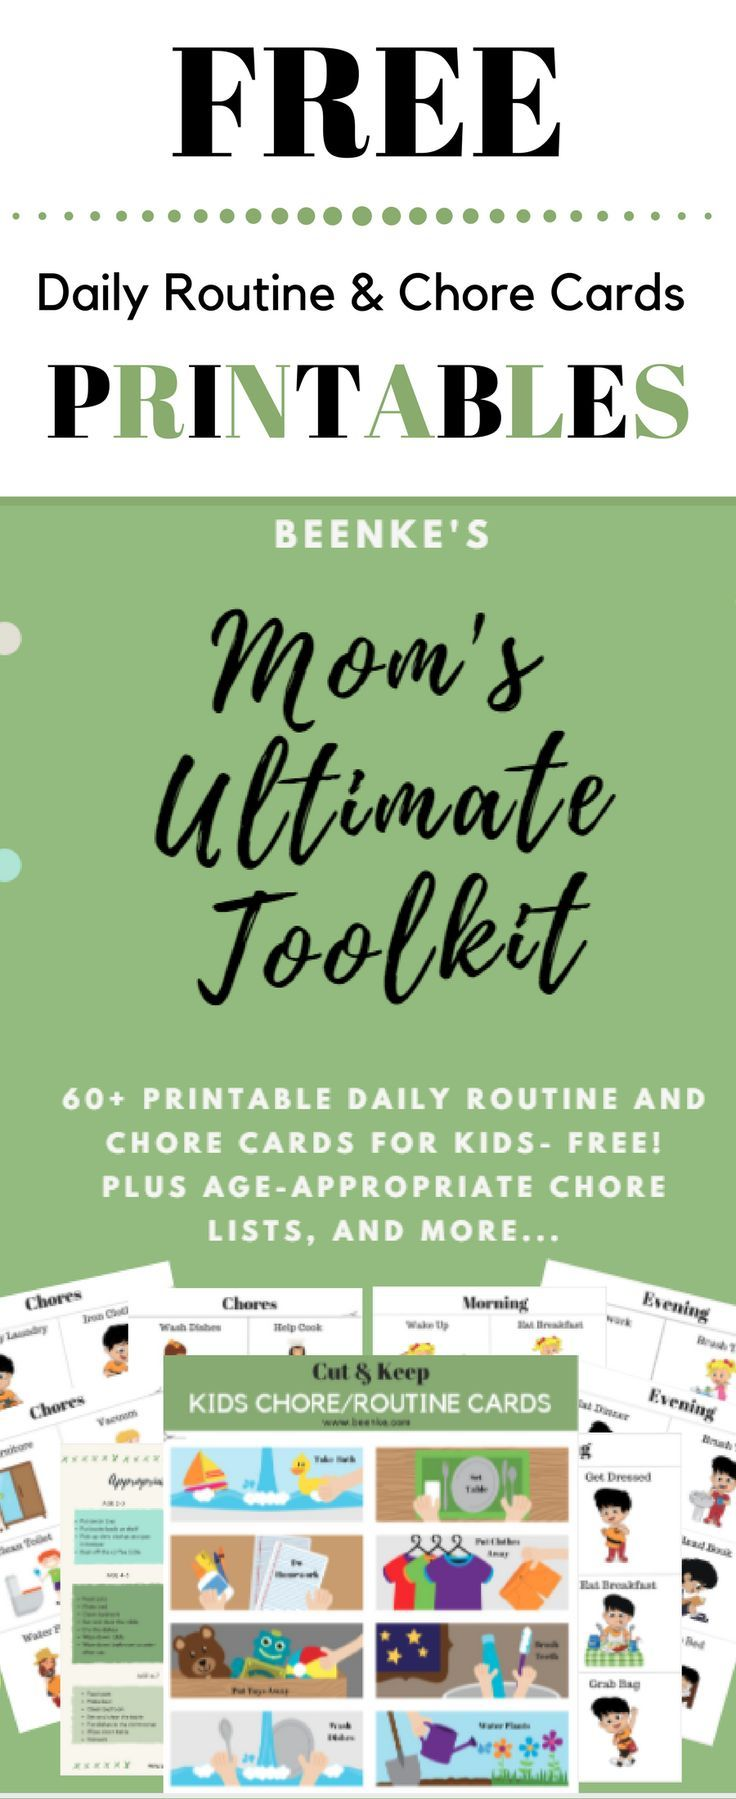 Free Printables of Daily Routine Schedule and Chore Charts. Your children